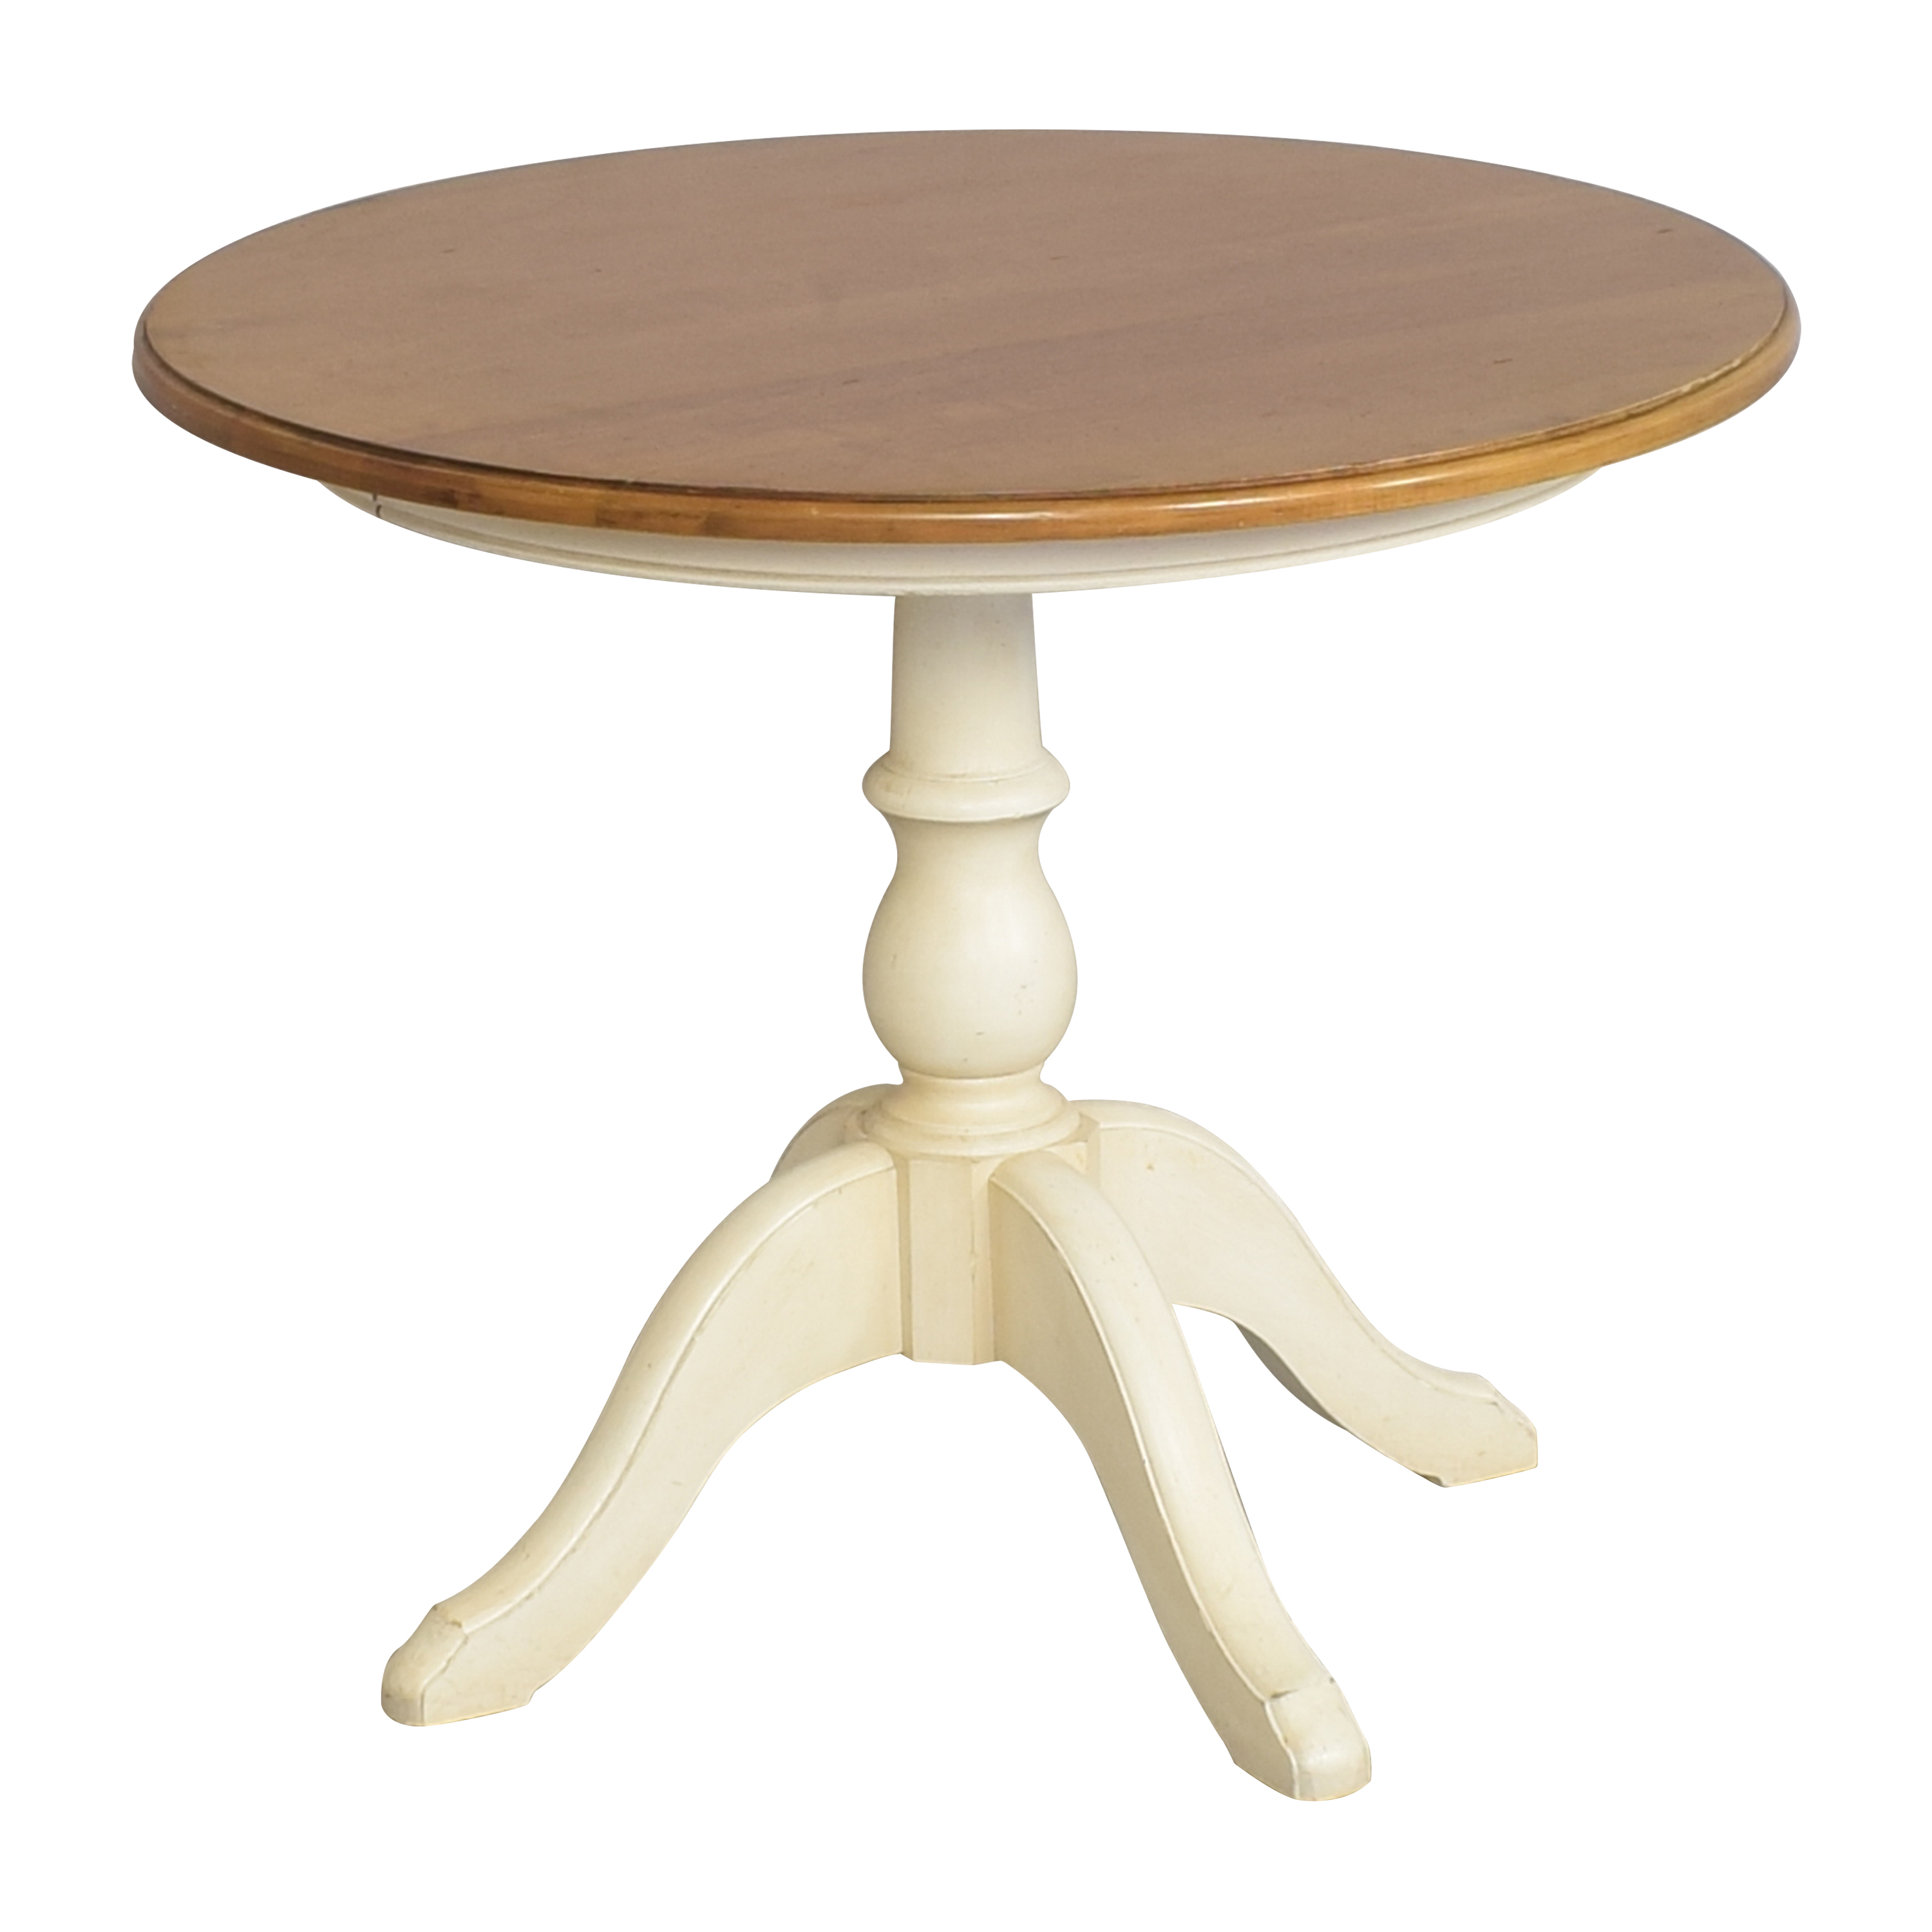 Ethan Allen Ethan Allen New Country Round Dining Table brown & beige